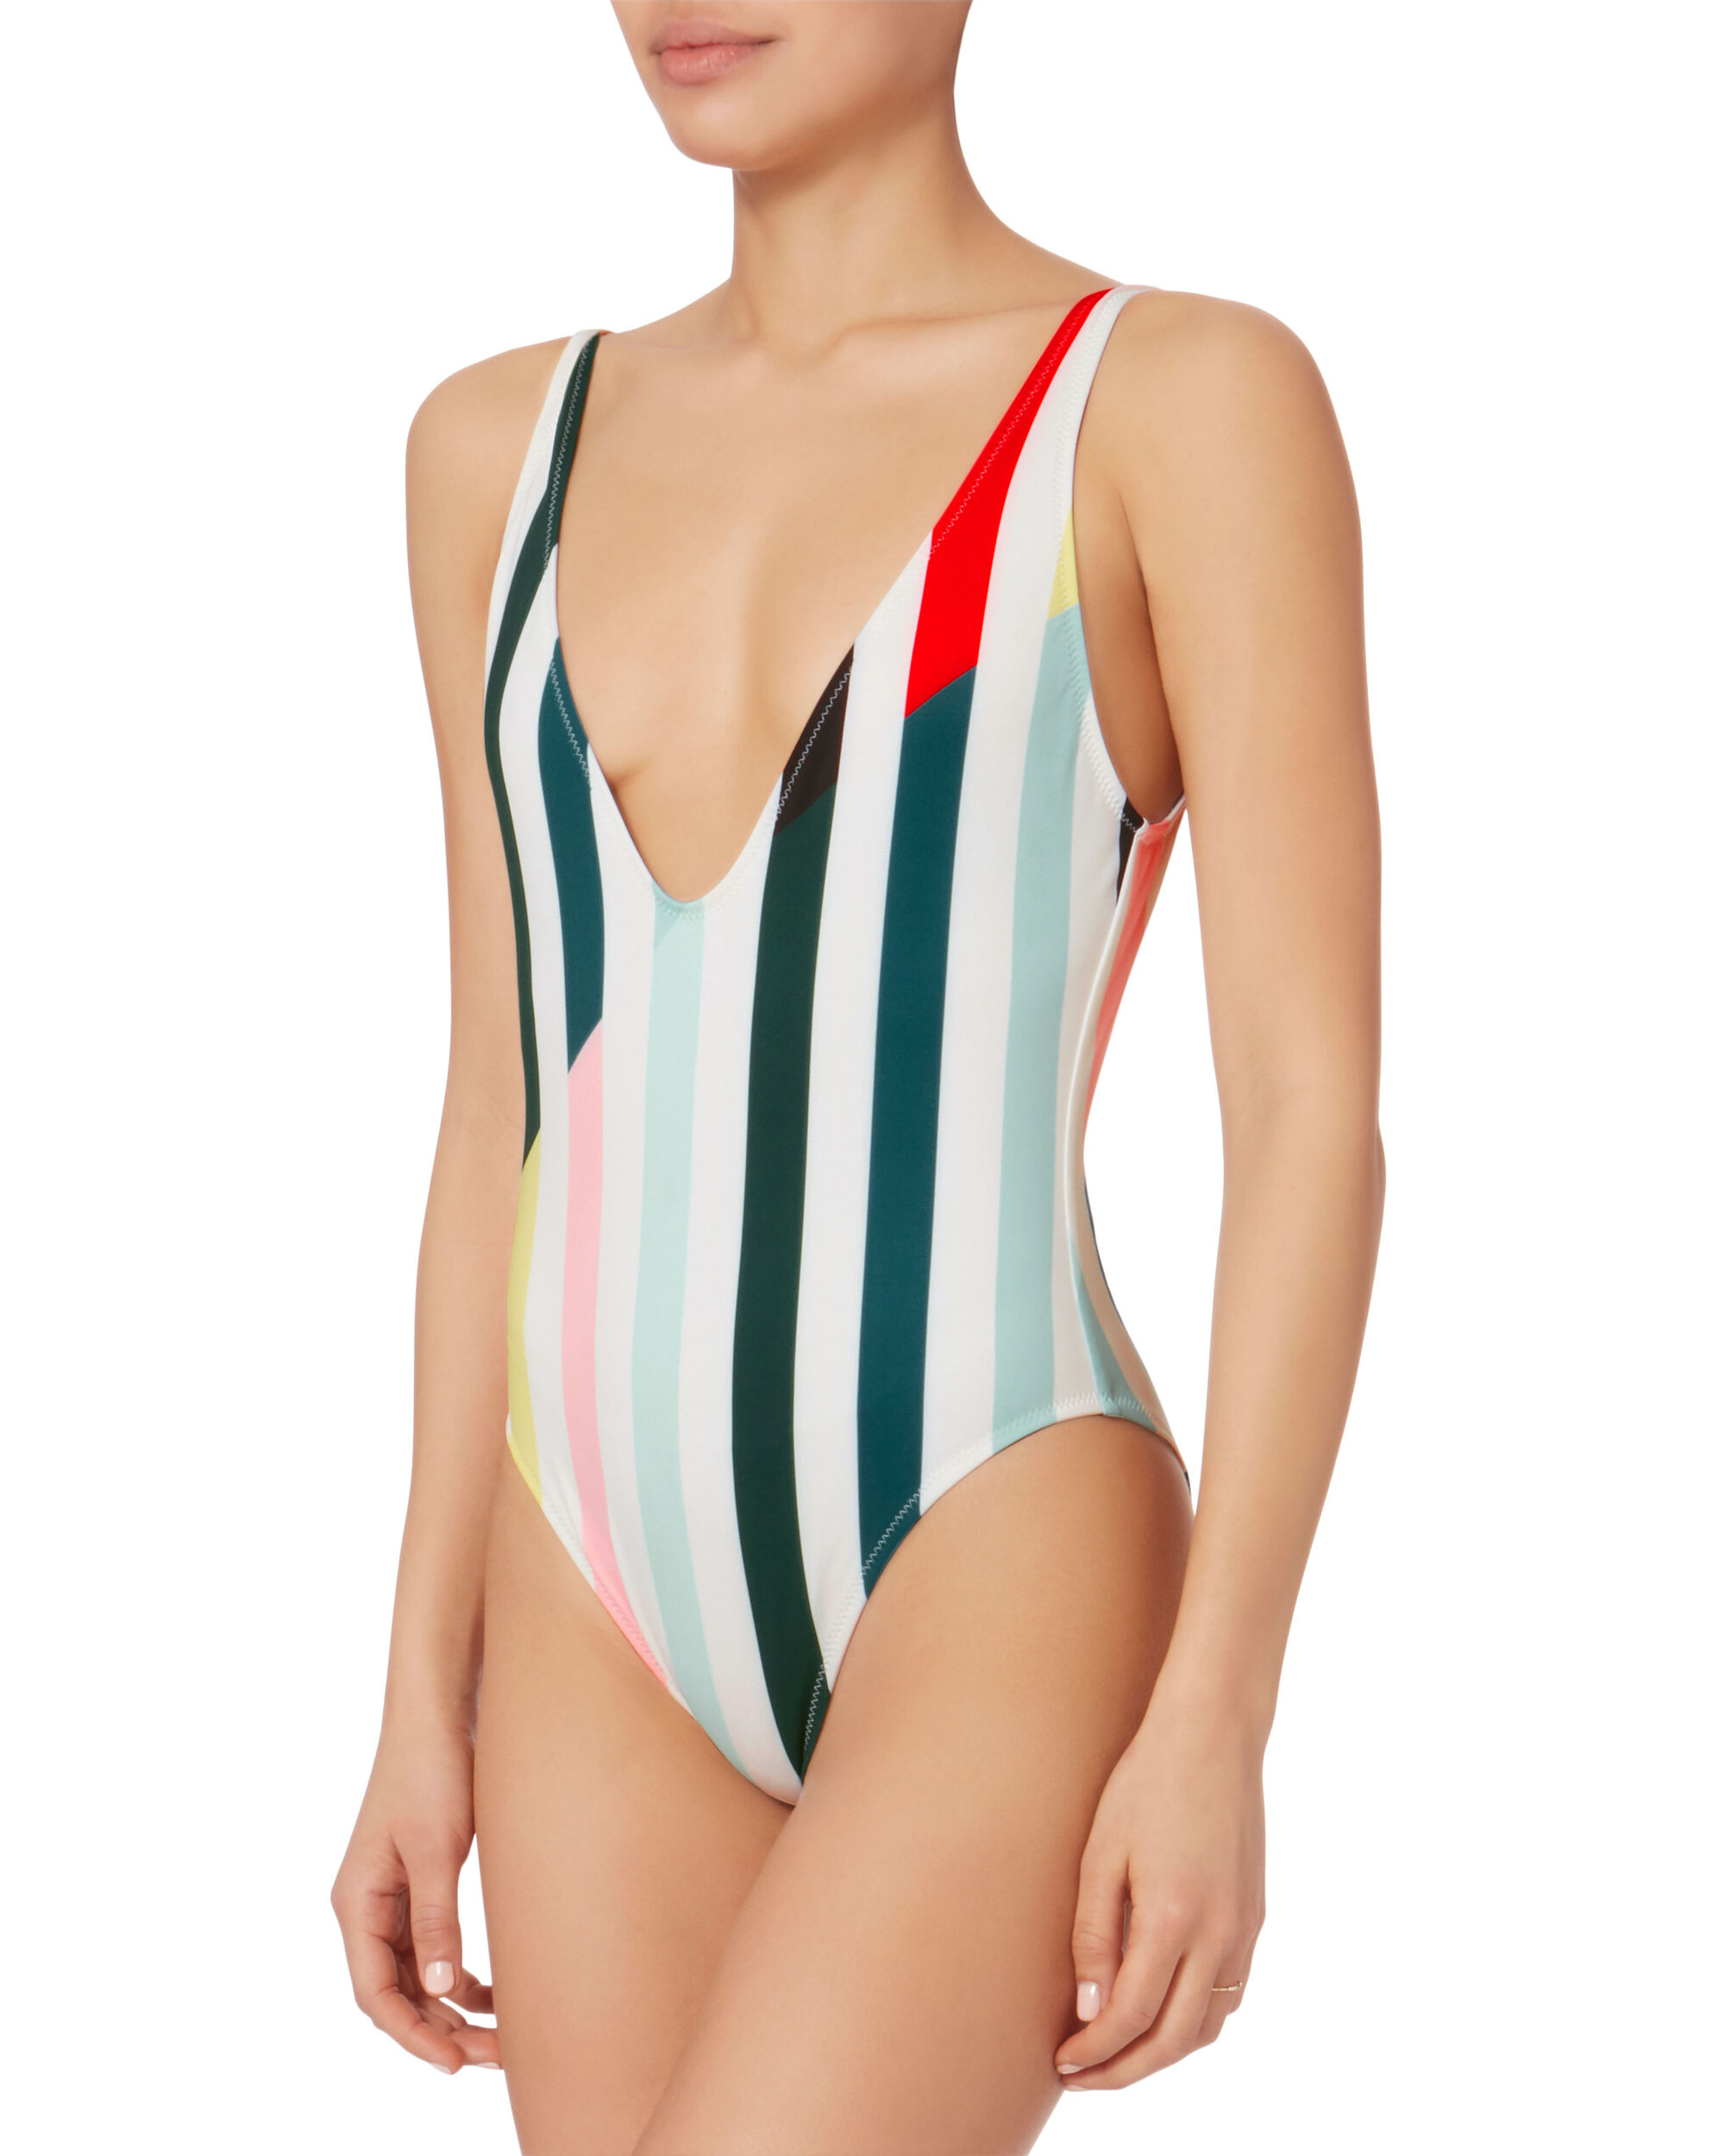 Michelle Deep-V Striped One Piece Swimsuit, PATTERN, hi-res